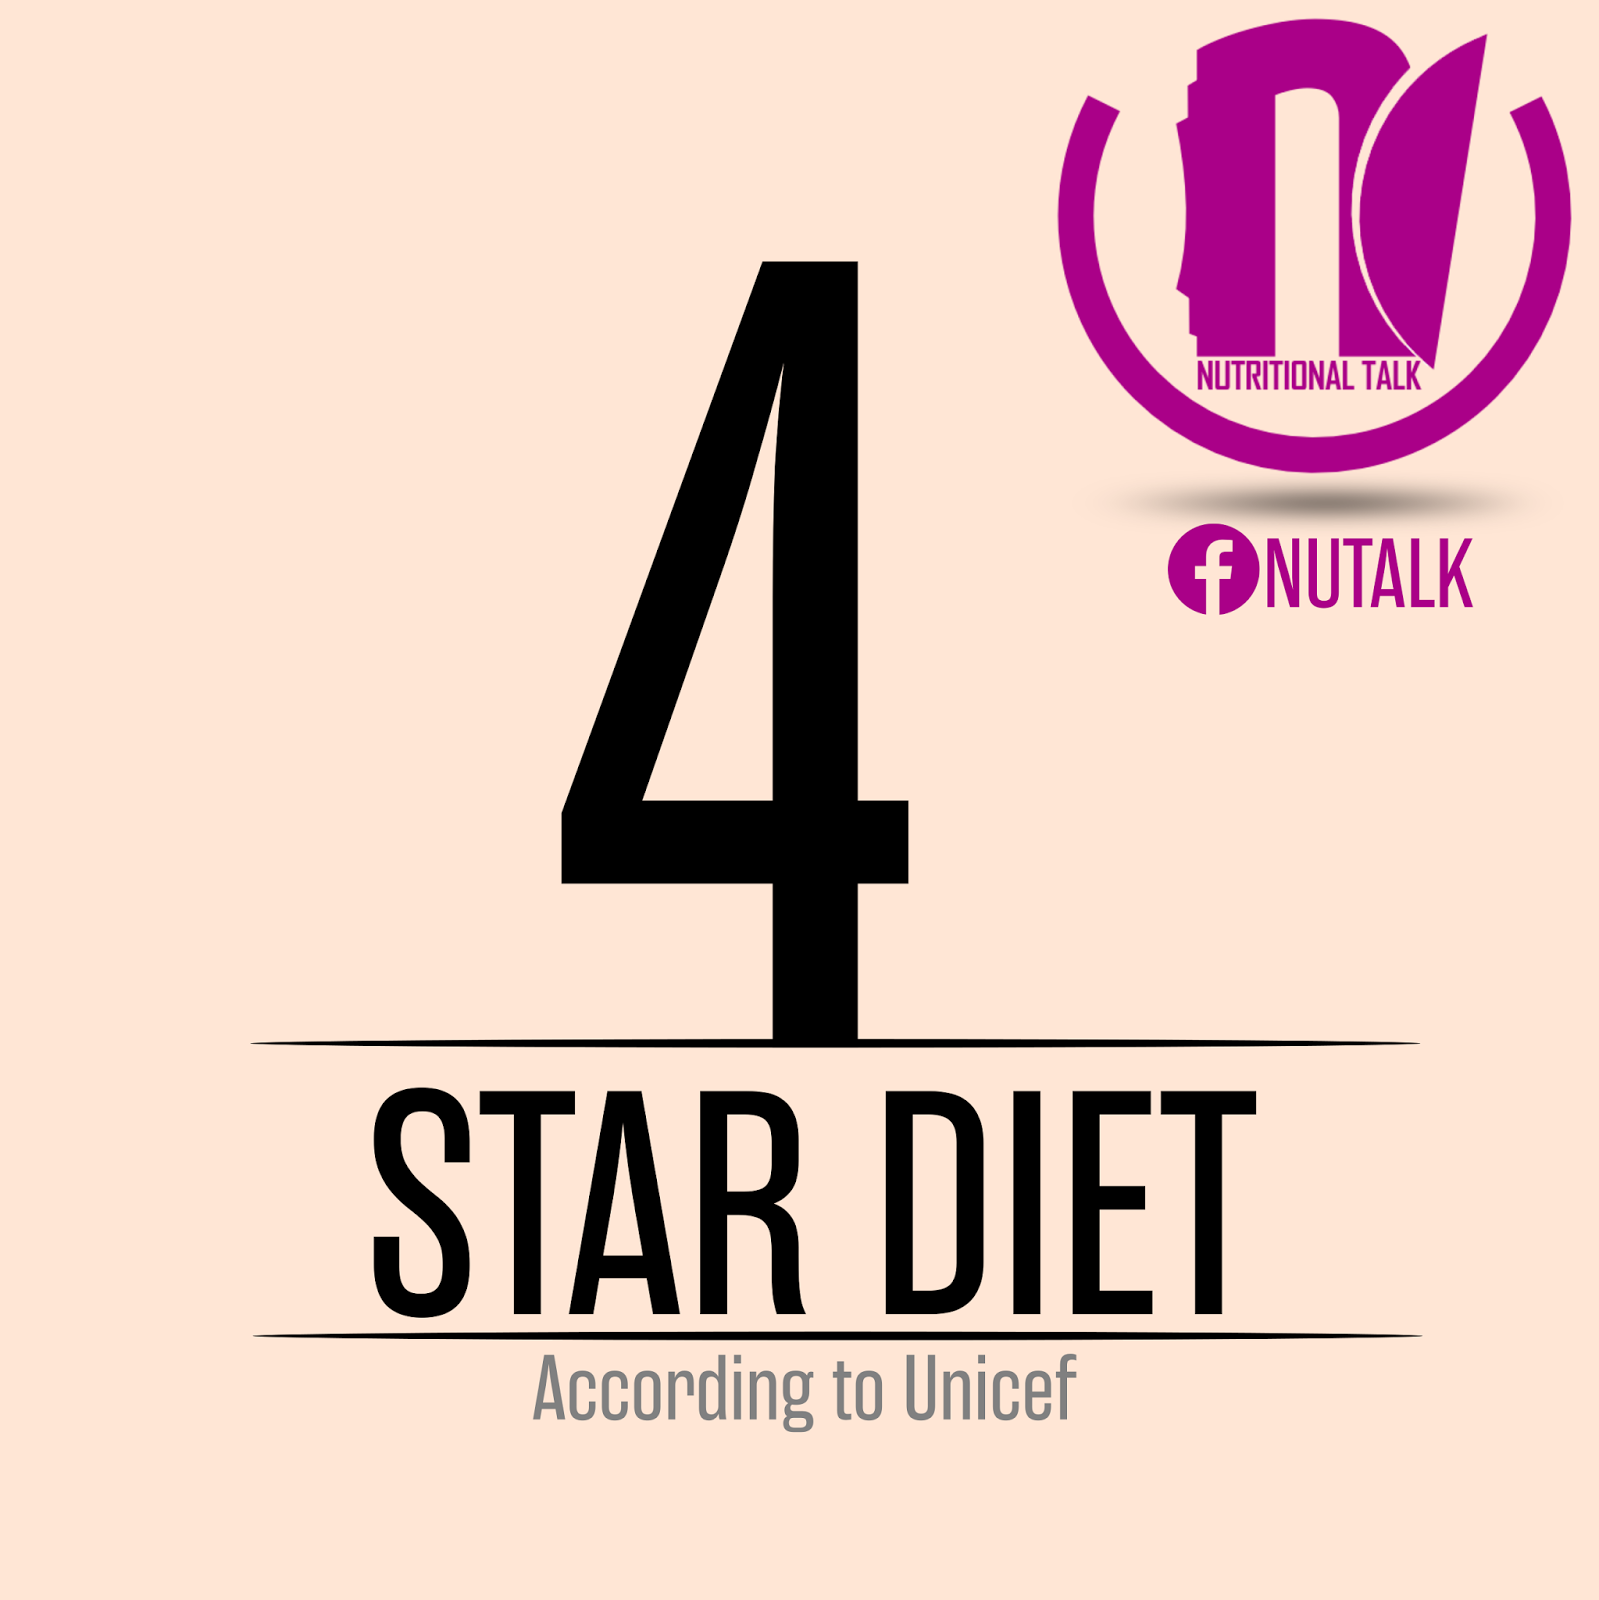 nwg works planning a 4 star diet the new balanced diet a 4 star diet is a new method of making sure that your meals are balanced and contain foods from all the food groups